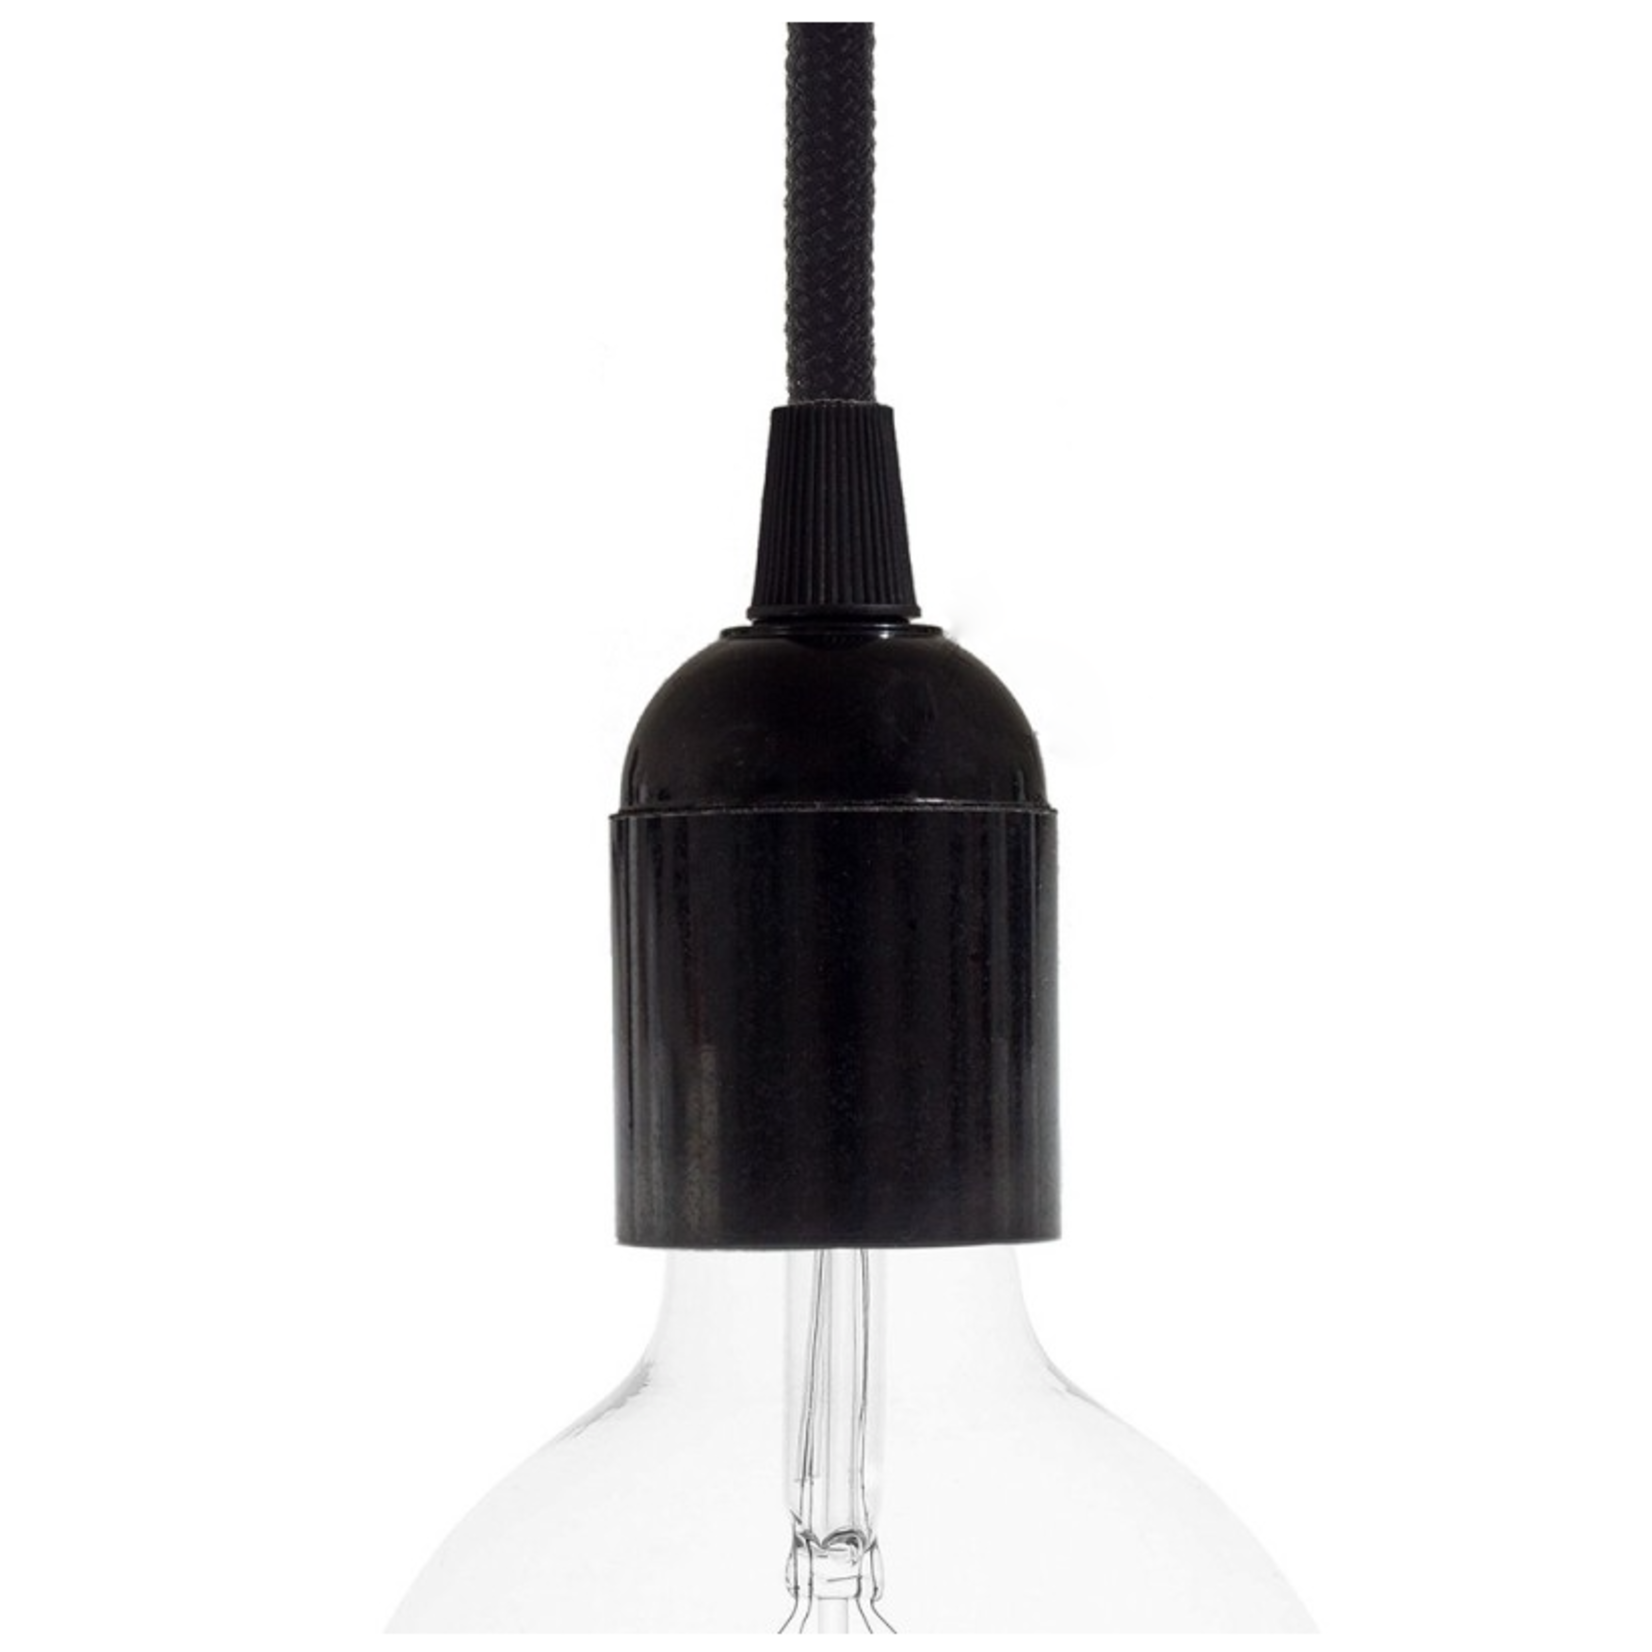 CCIT Black Bakelite E27 Lampholder shade holder ring with cable grip